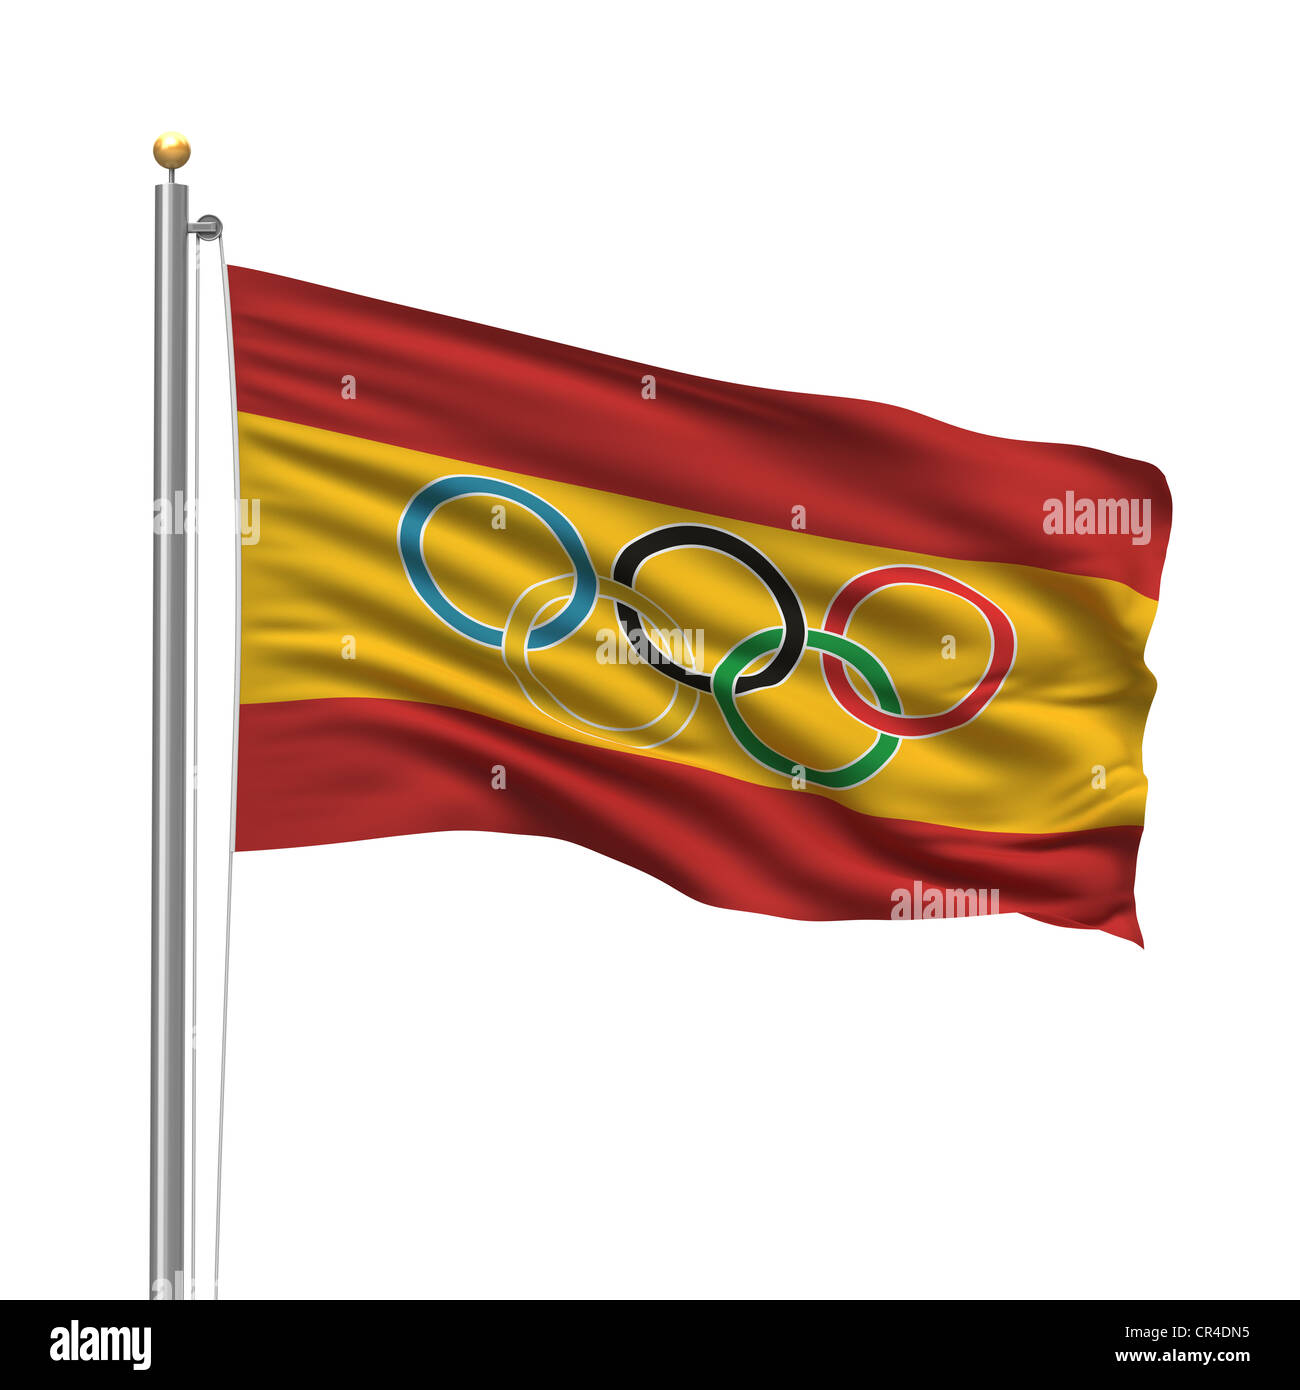 Flag of Spain with Olympic rings - Stock Image